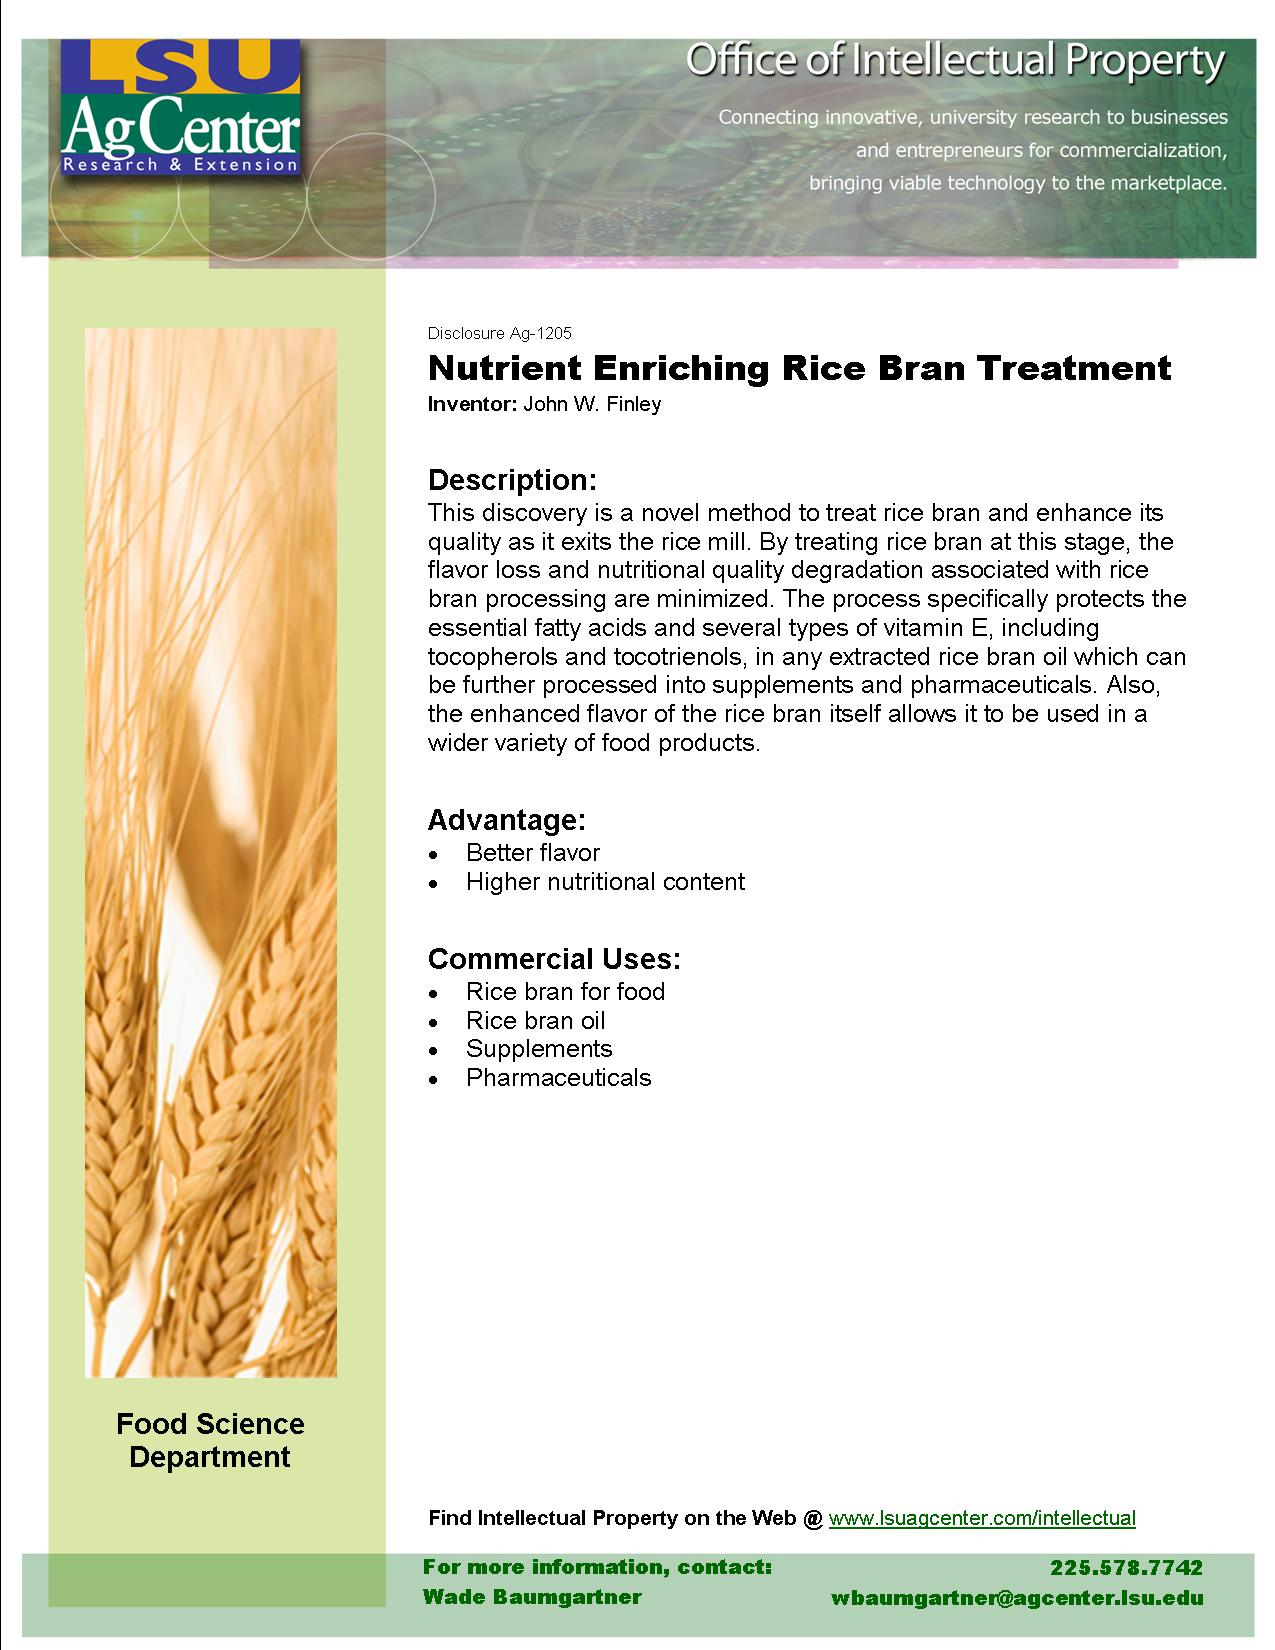 Nutrient Enriching Rice Bran Treatment